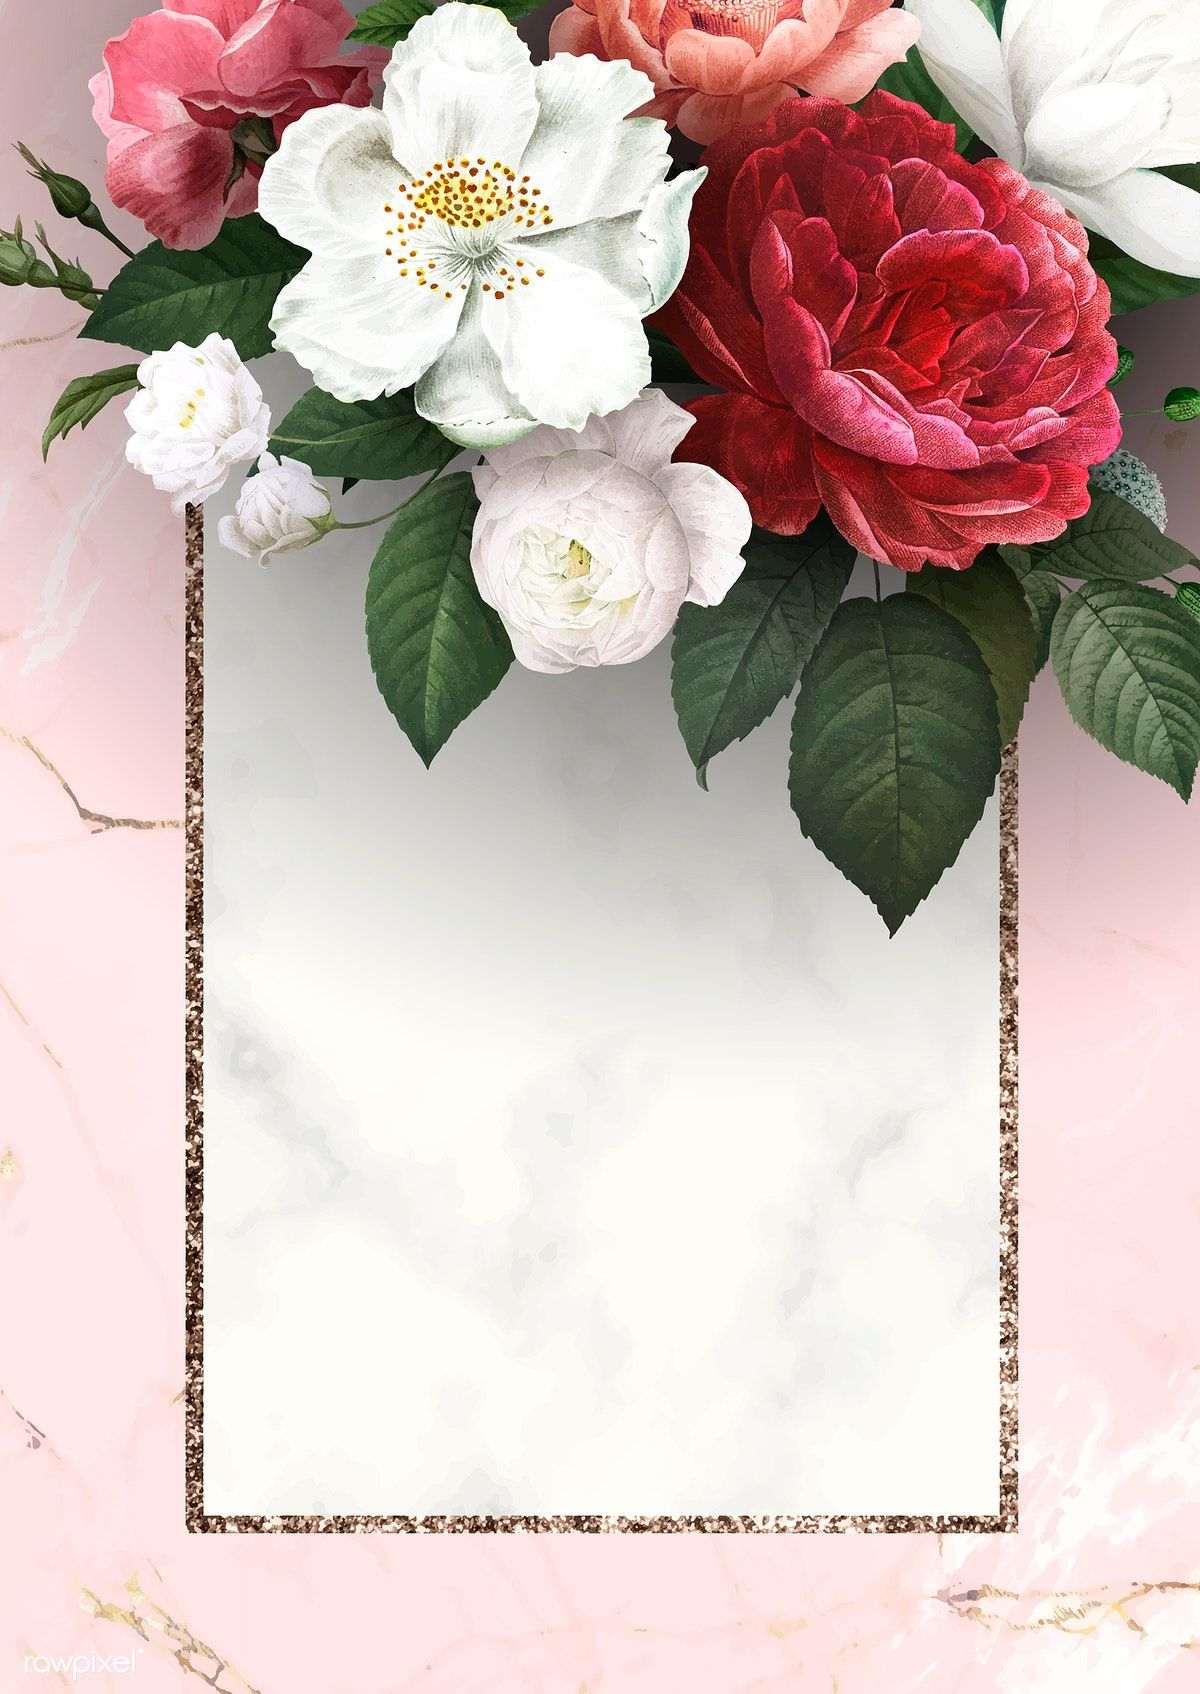 Download Premium Vector Of Floral Frame On A Marble Textured